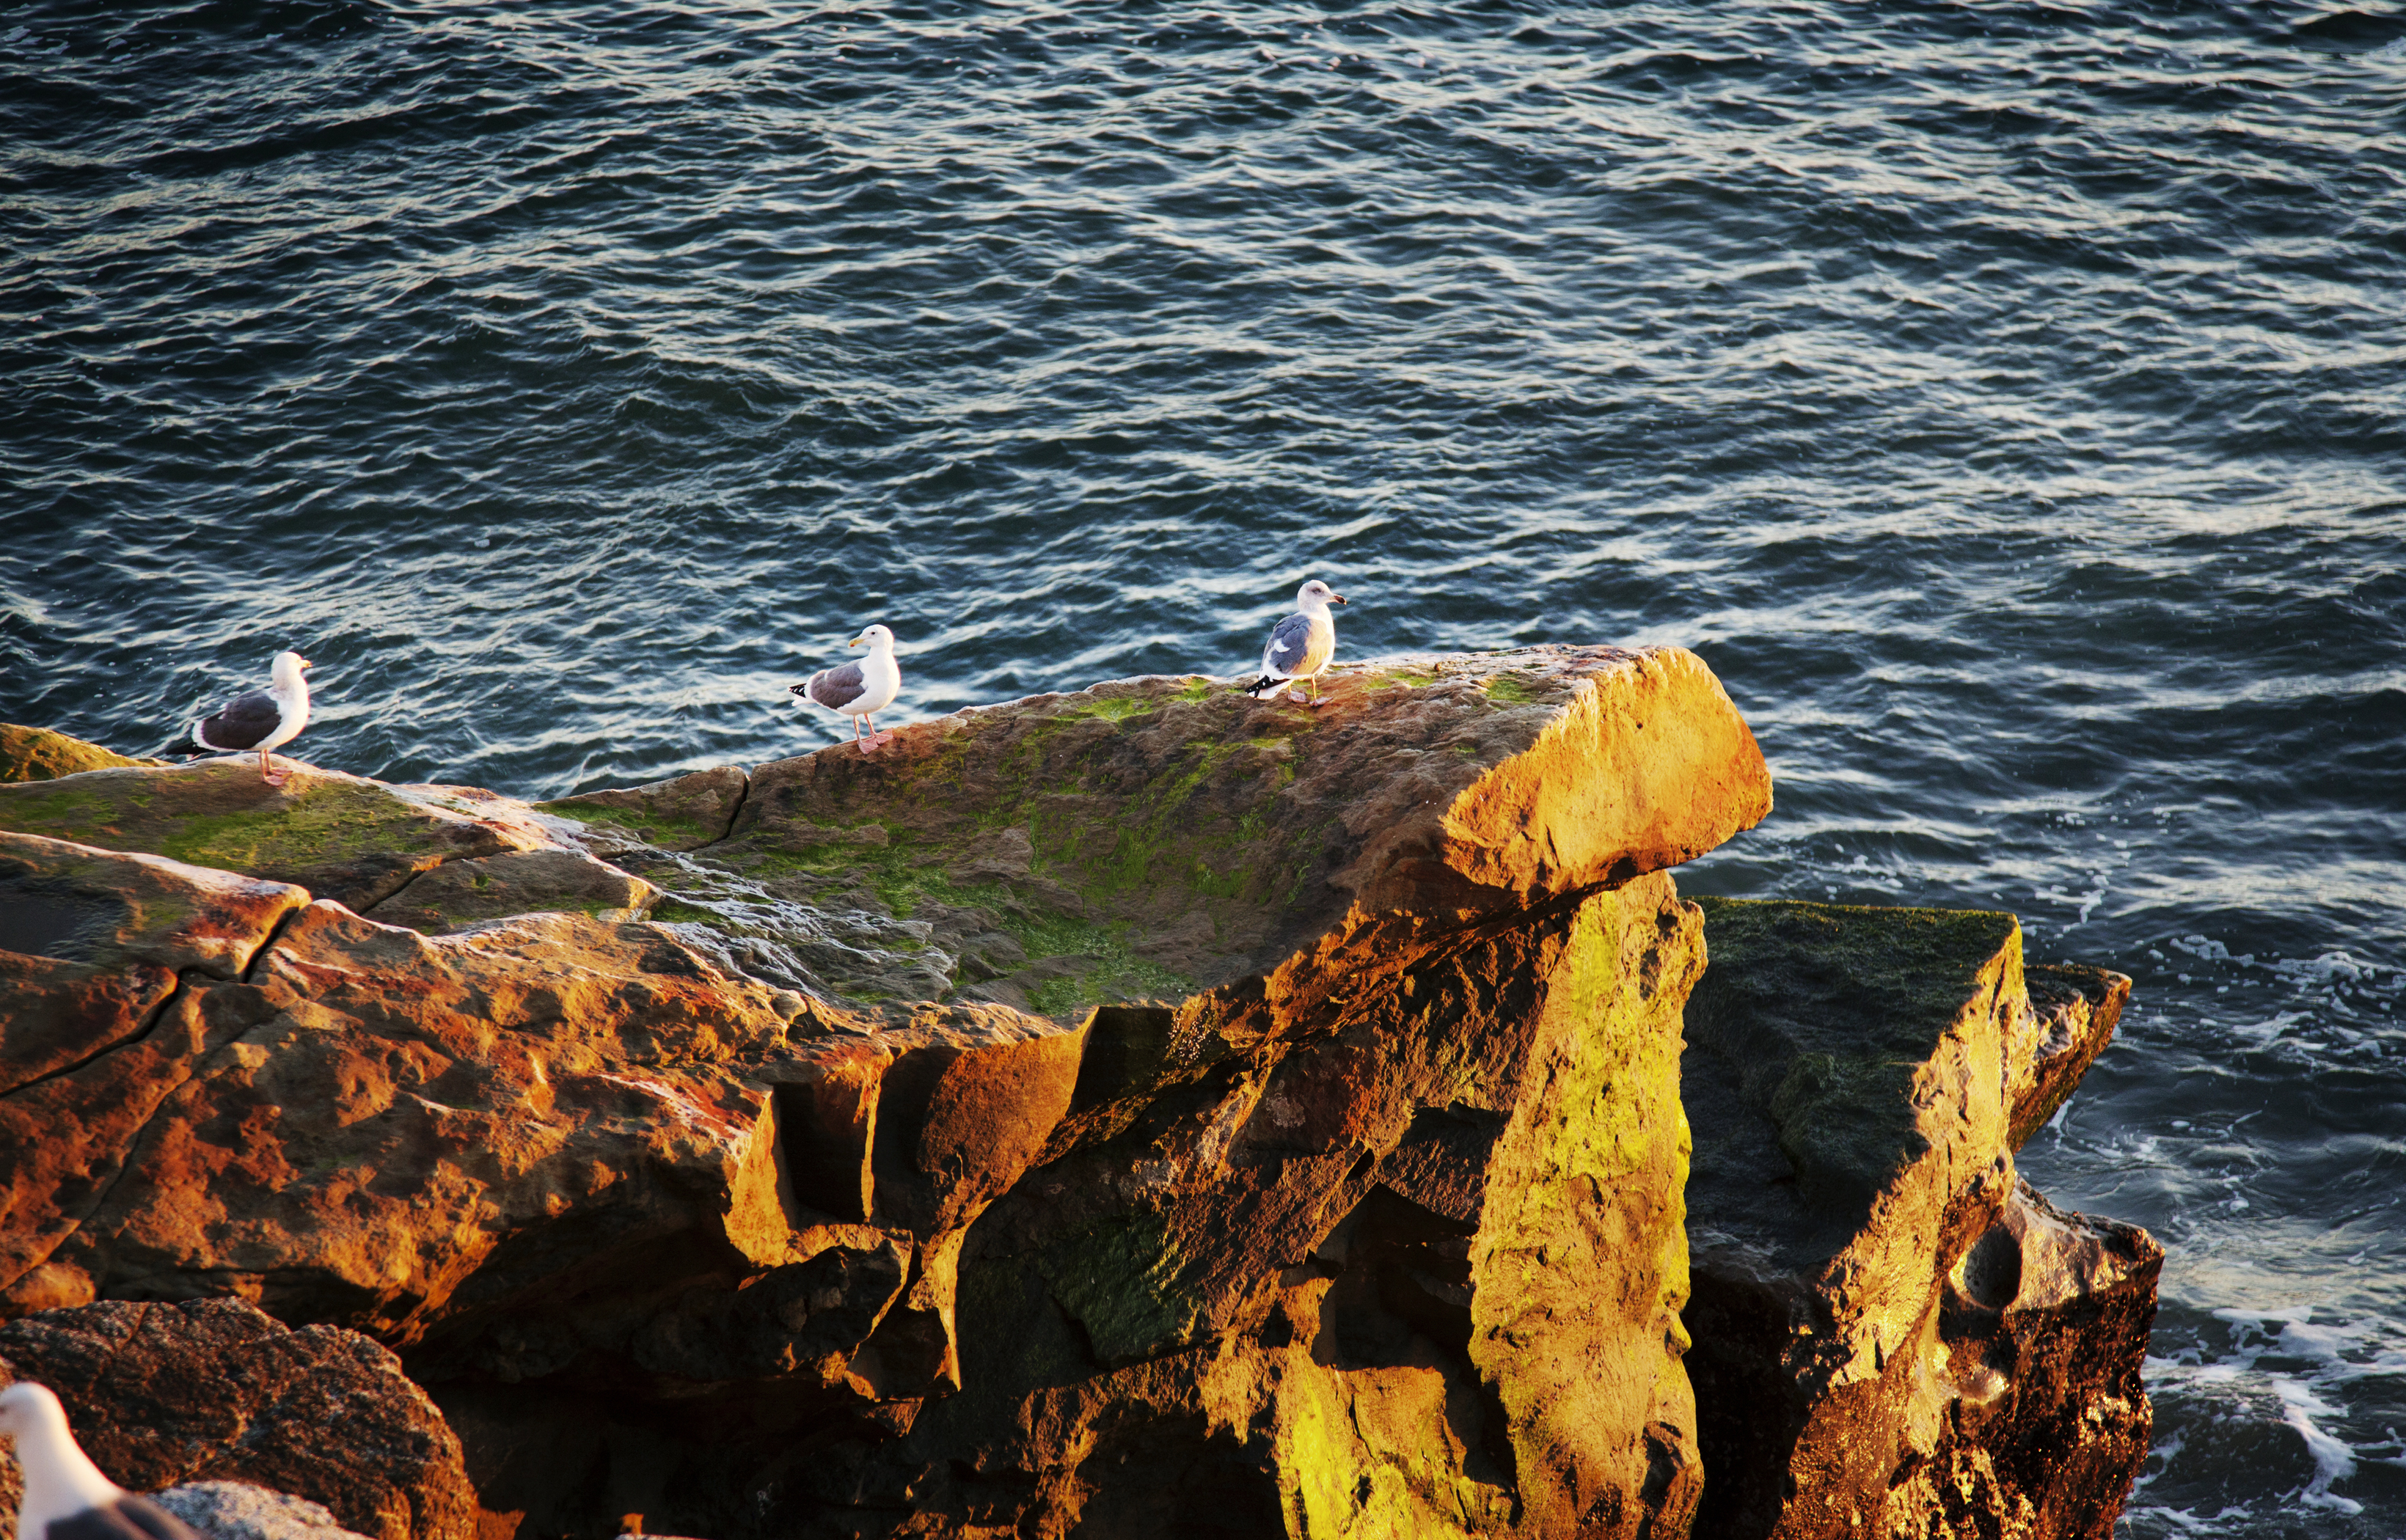 Seagulls on Rock Web